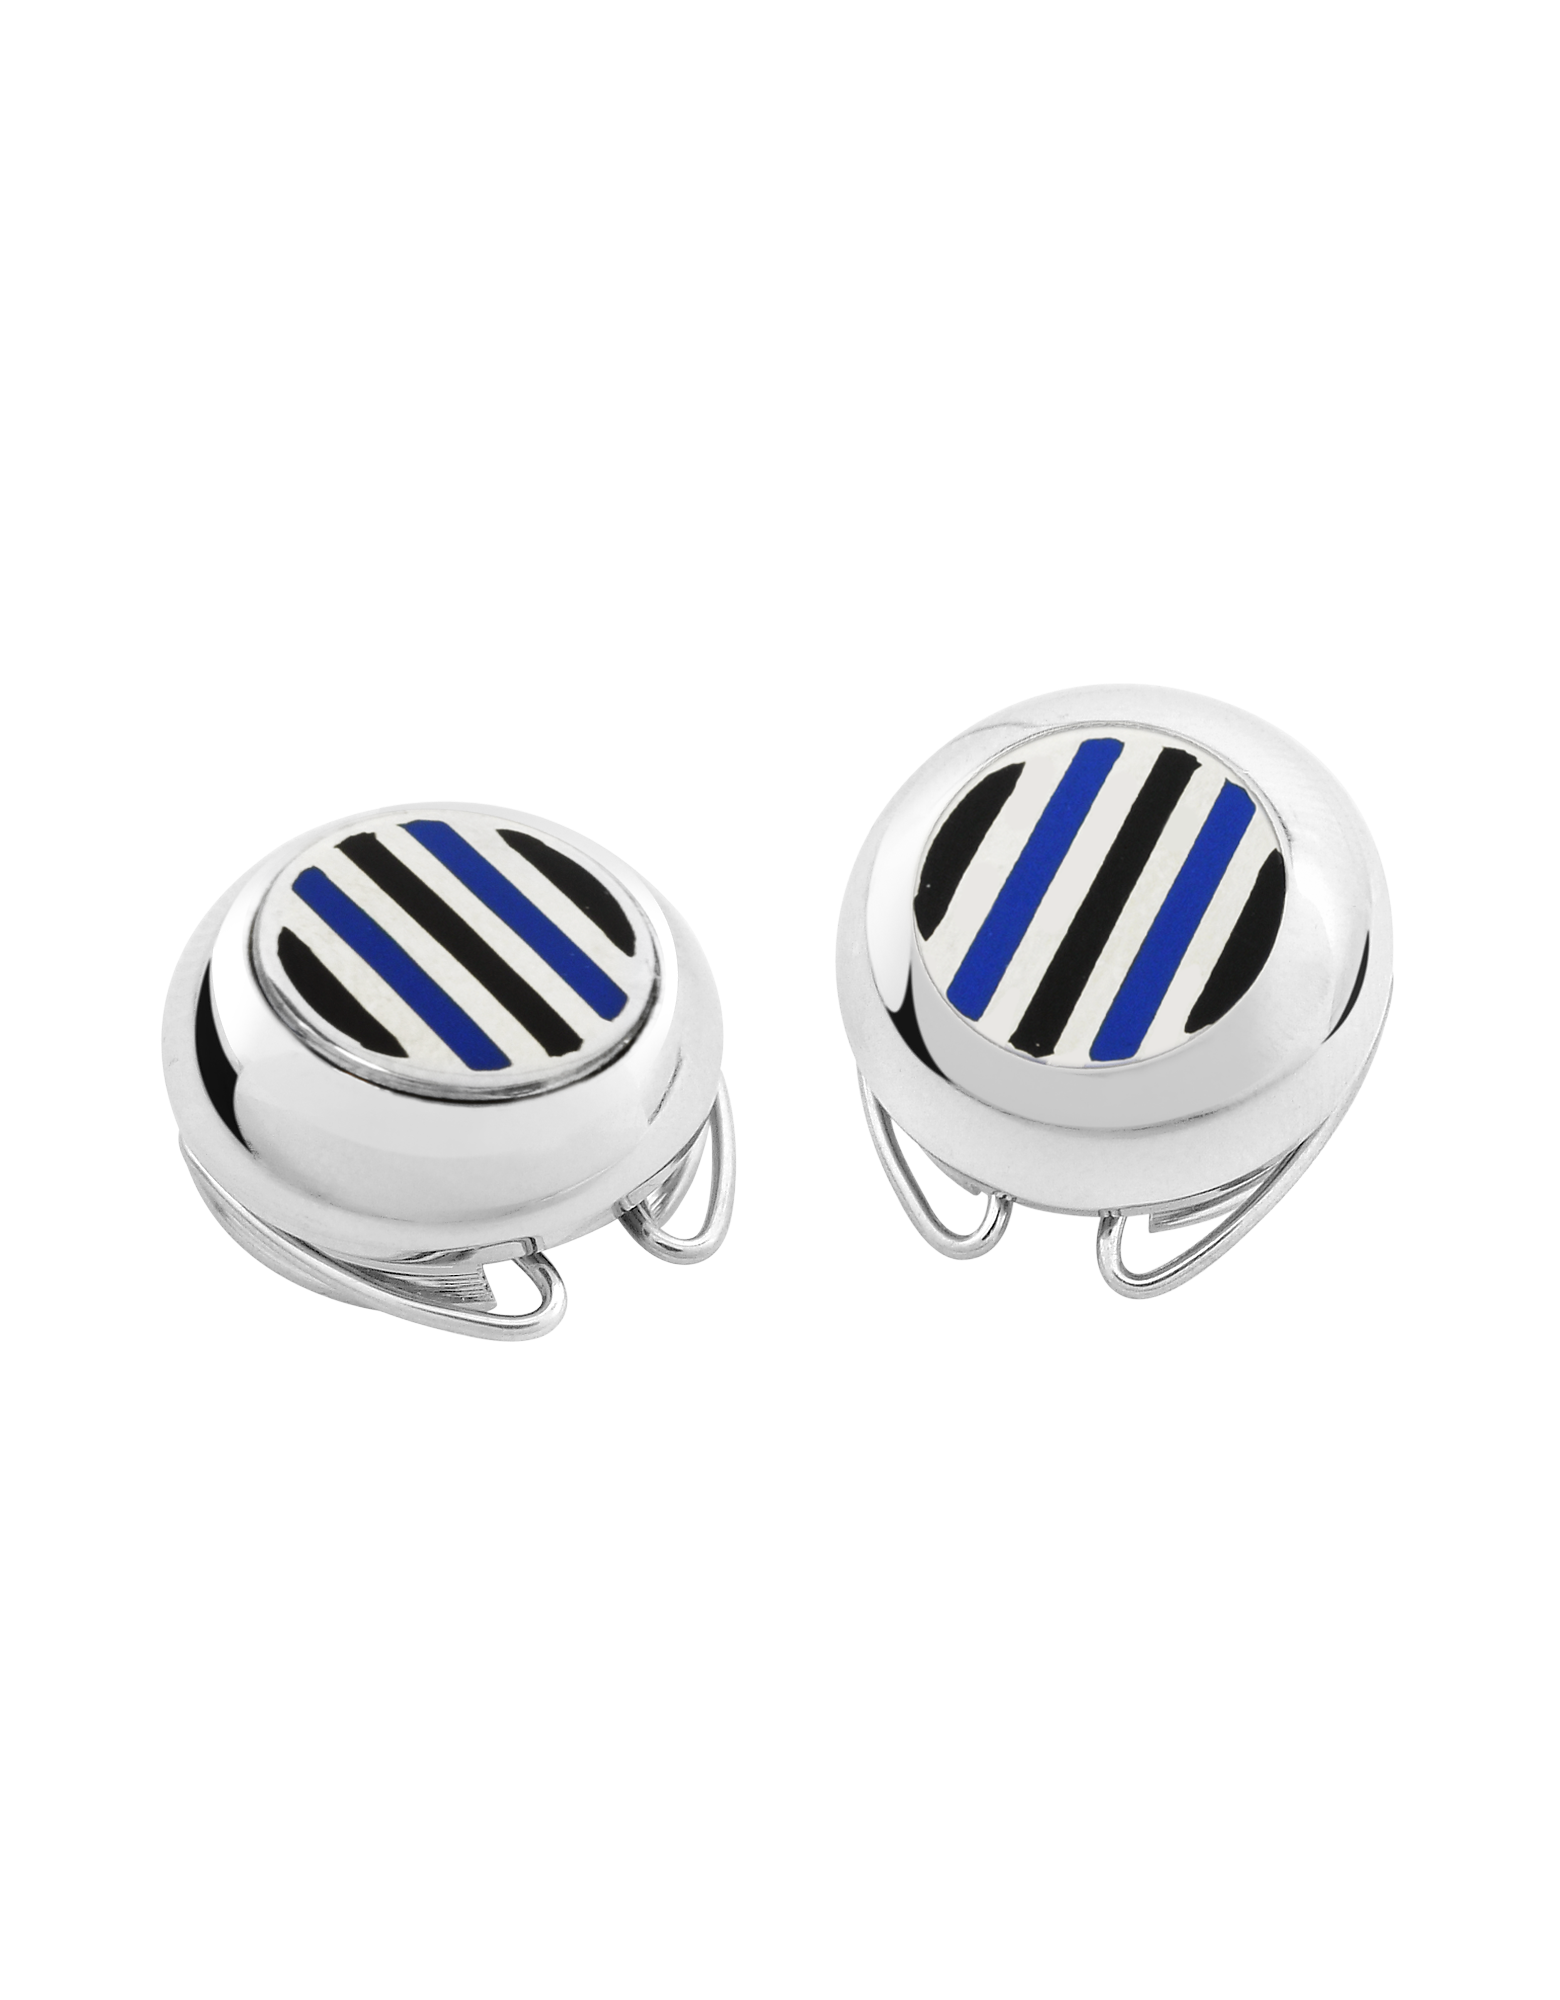 Image of Striped Silver Plated Button Covers